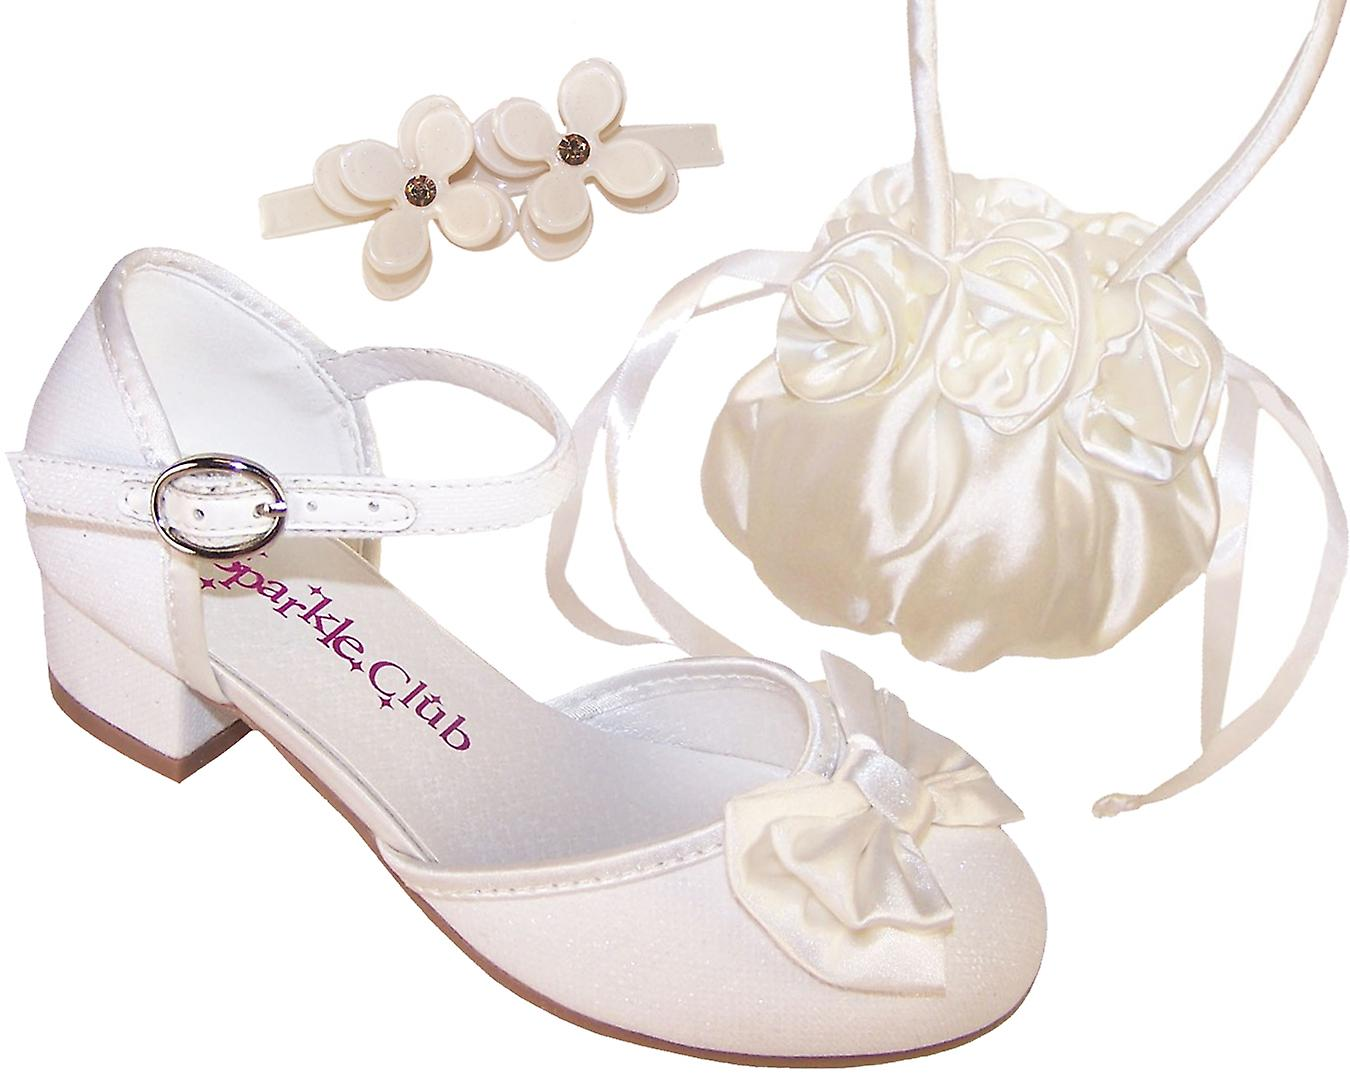 770ba07ccc4 Girls sparkly ivory flower girl bridesmaid shoes and bag